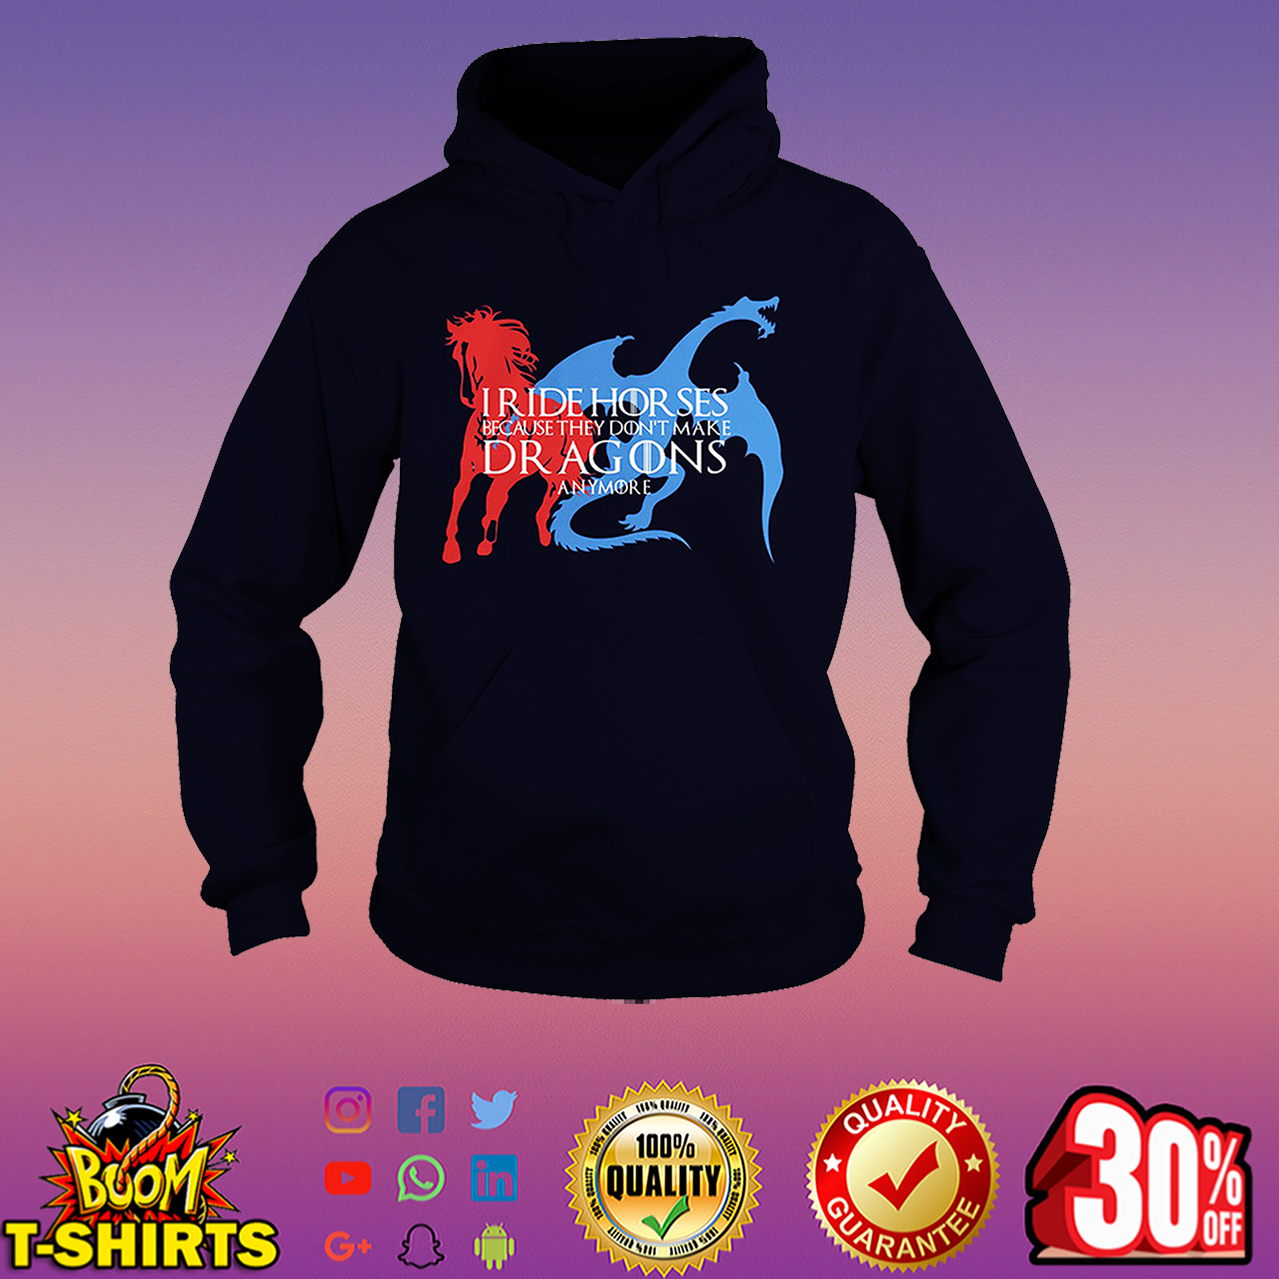 Iride horses because they don't make dragons anymore hoodie